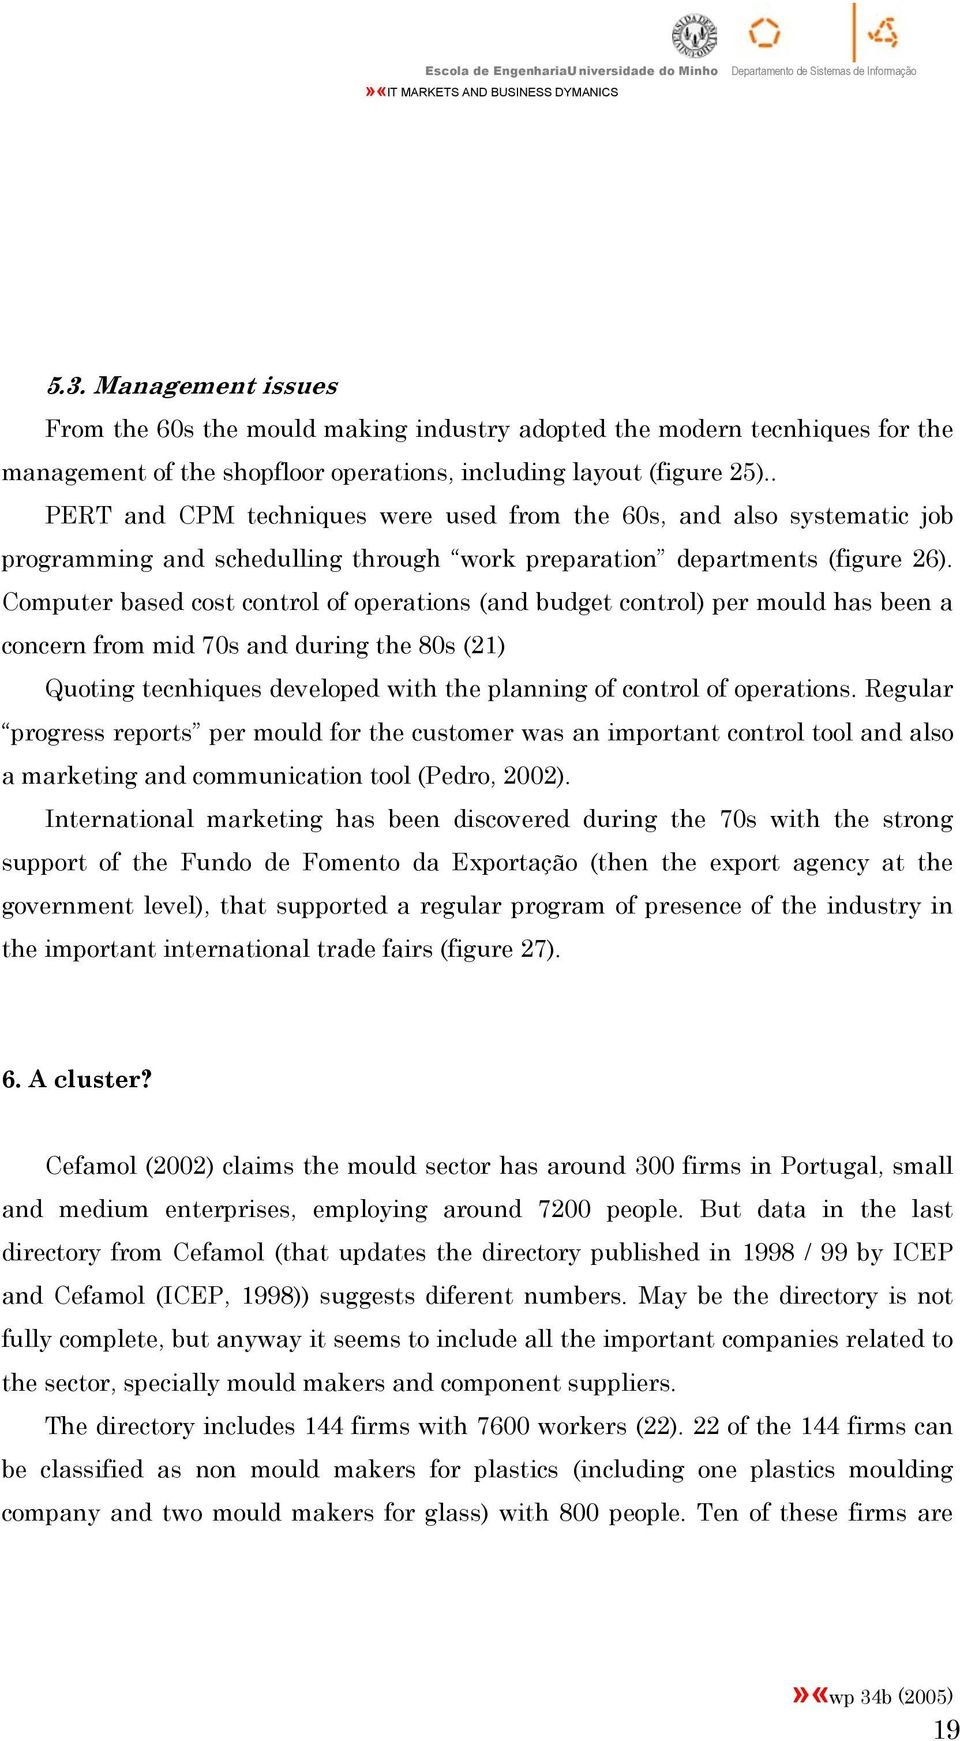 Computer based cost control of operations (and budget control) per mould has been a concern from mid 70s and during the 80s (21) Quoting tecnhiques developed with the planning of control of